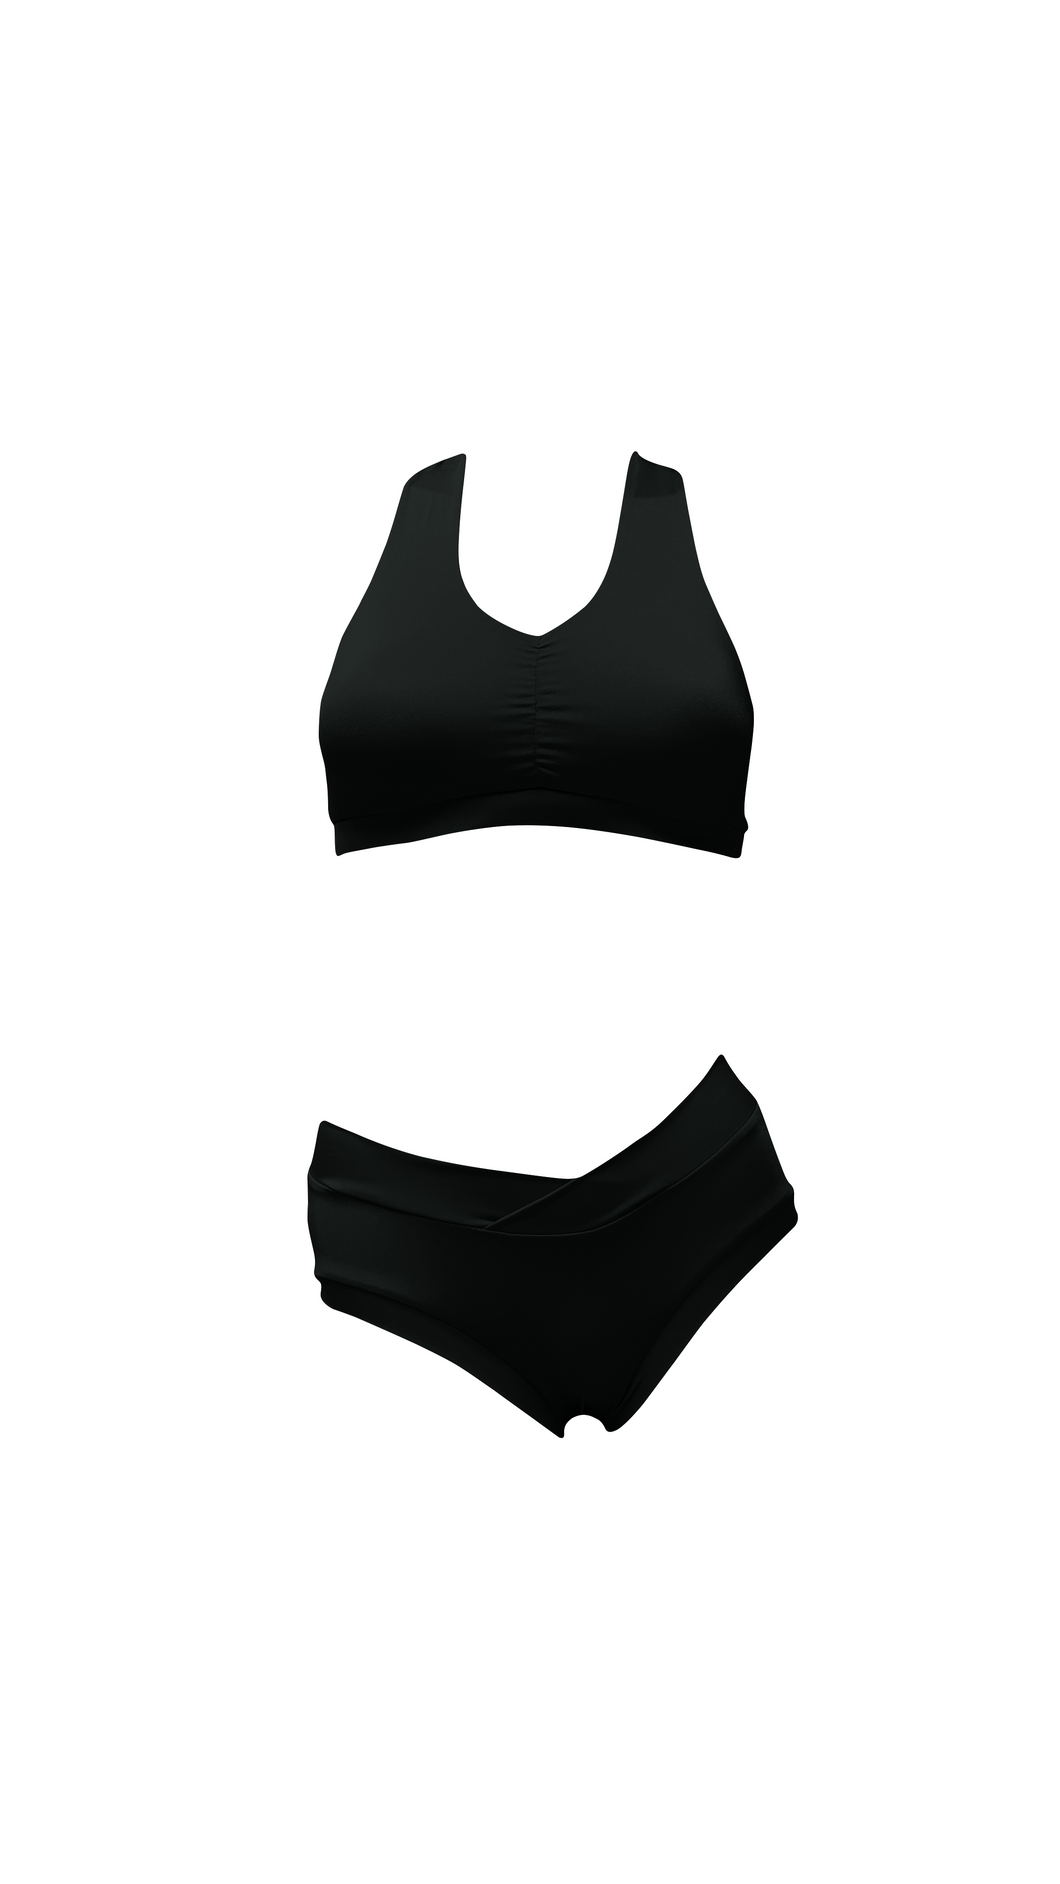 Extra Small Black Twisty Sports Bra - FINAL SALE